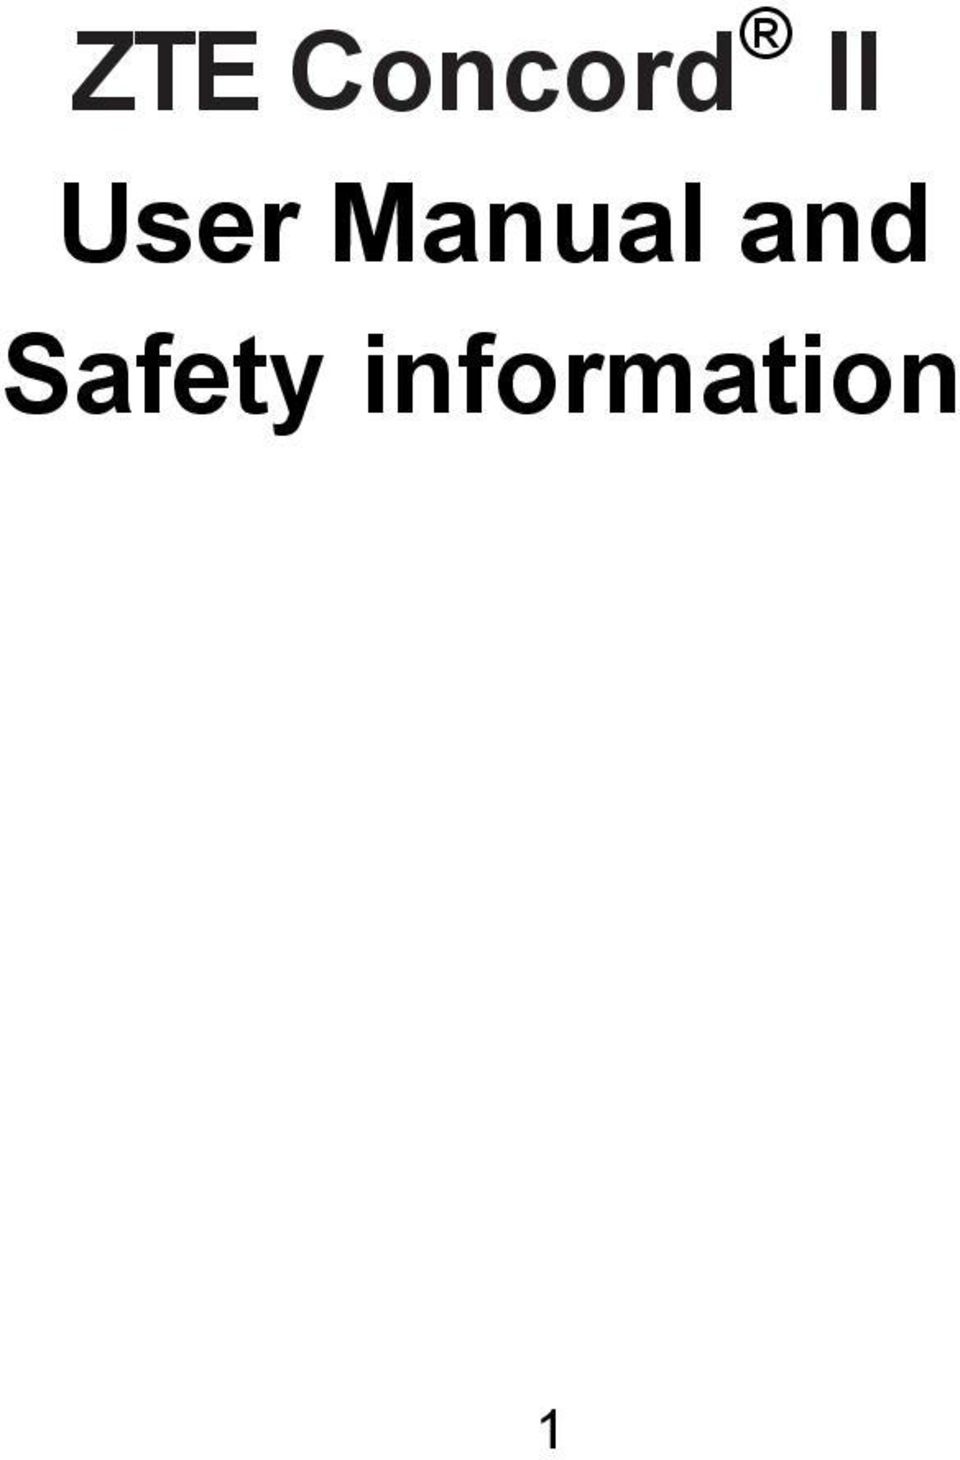 ZTE Concord II User Manual and Safety information - PDF